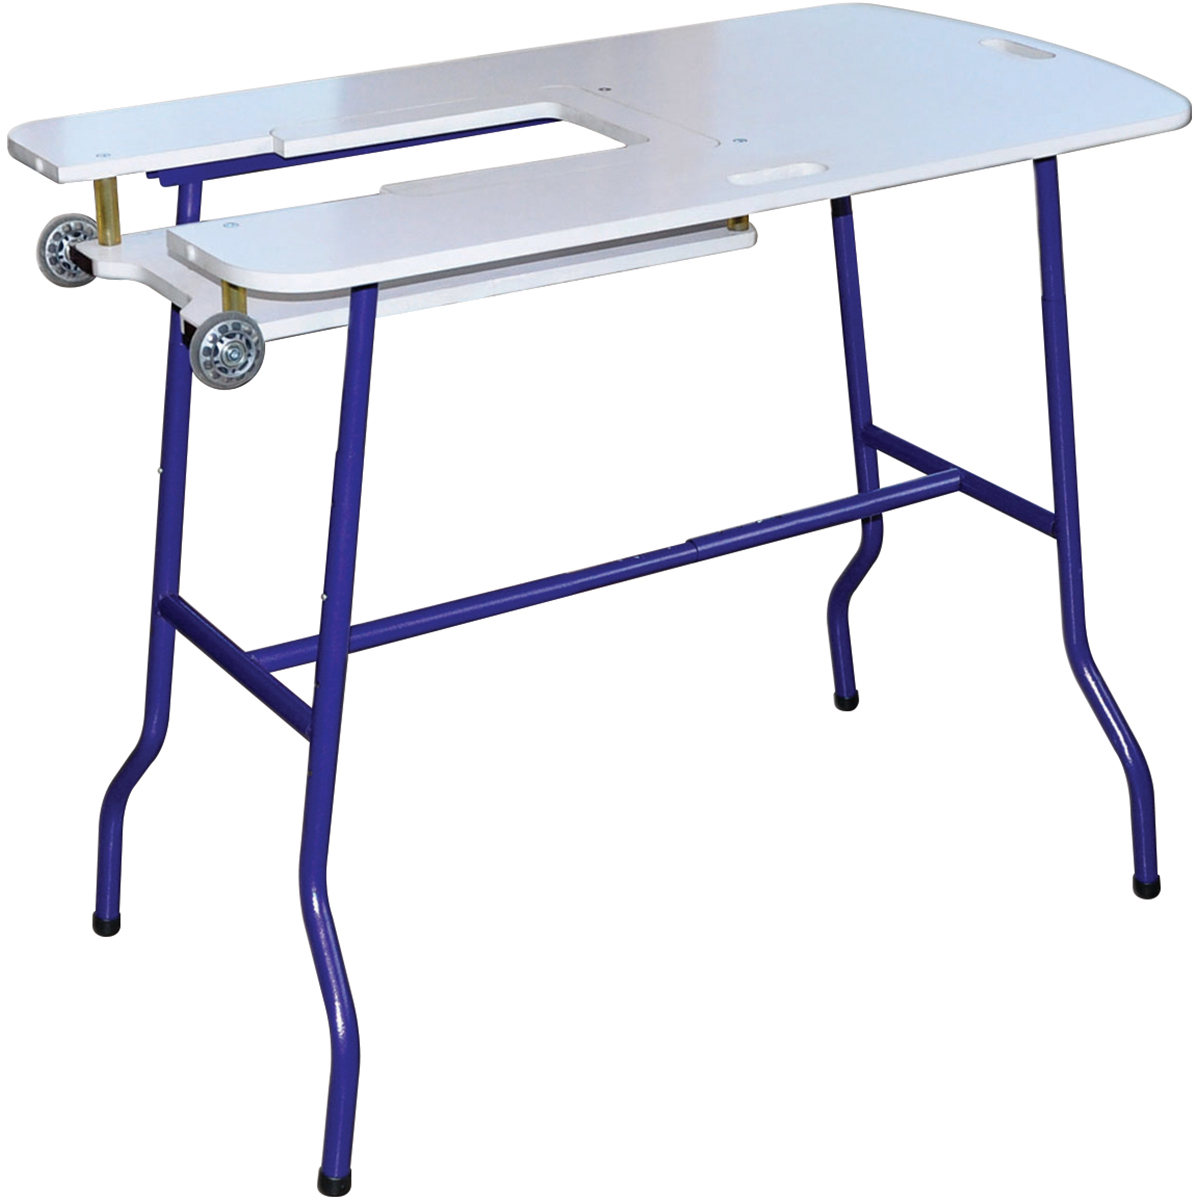 Sew & Go Adjustable Height Foldable Sewing Table